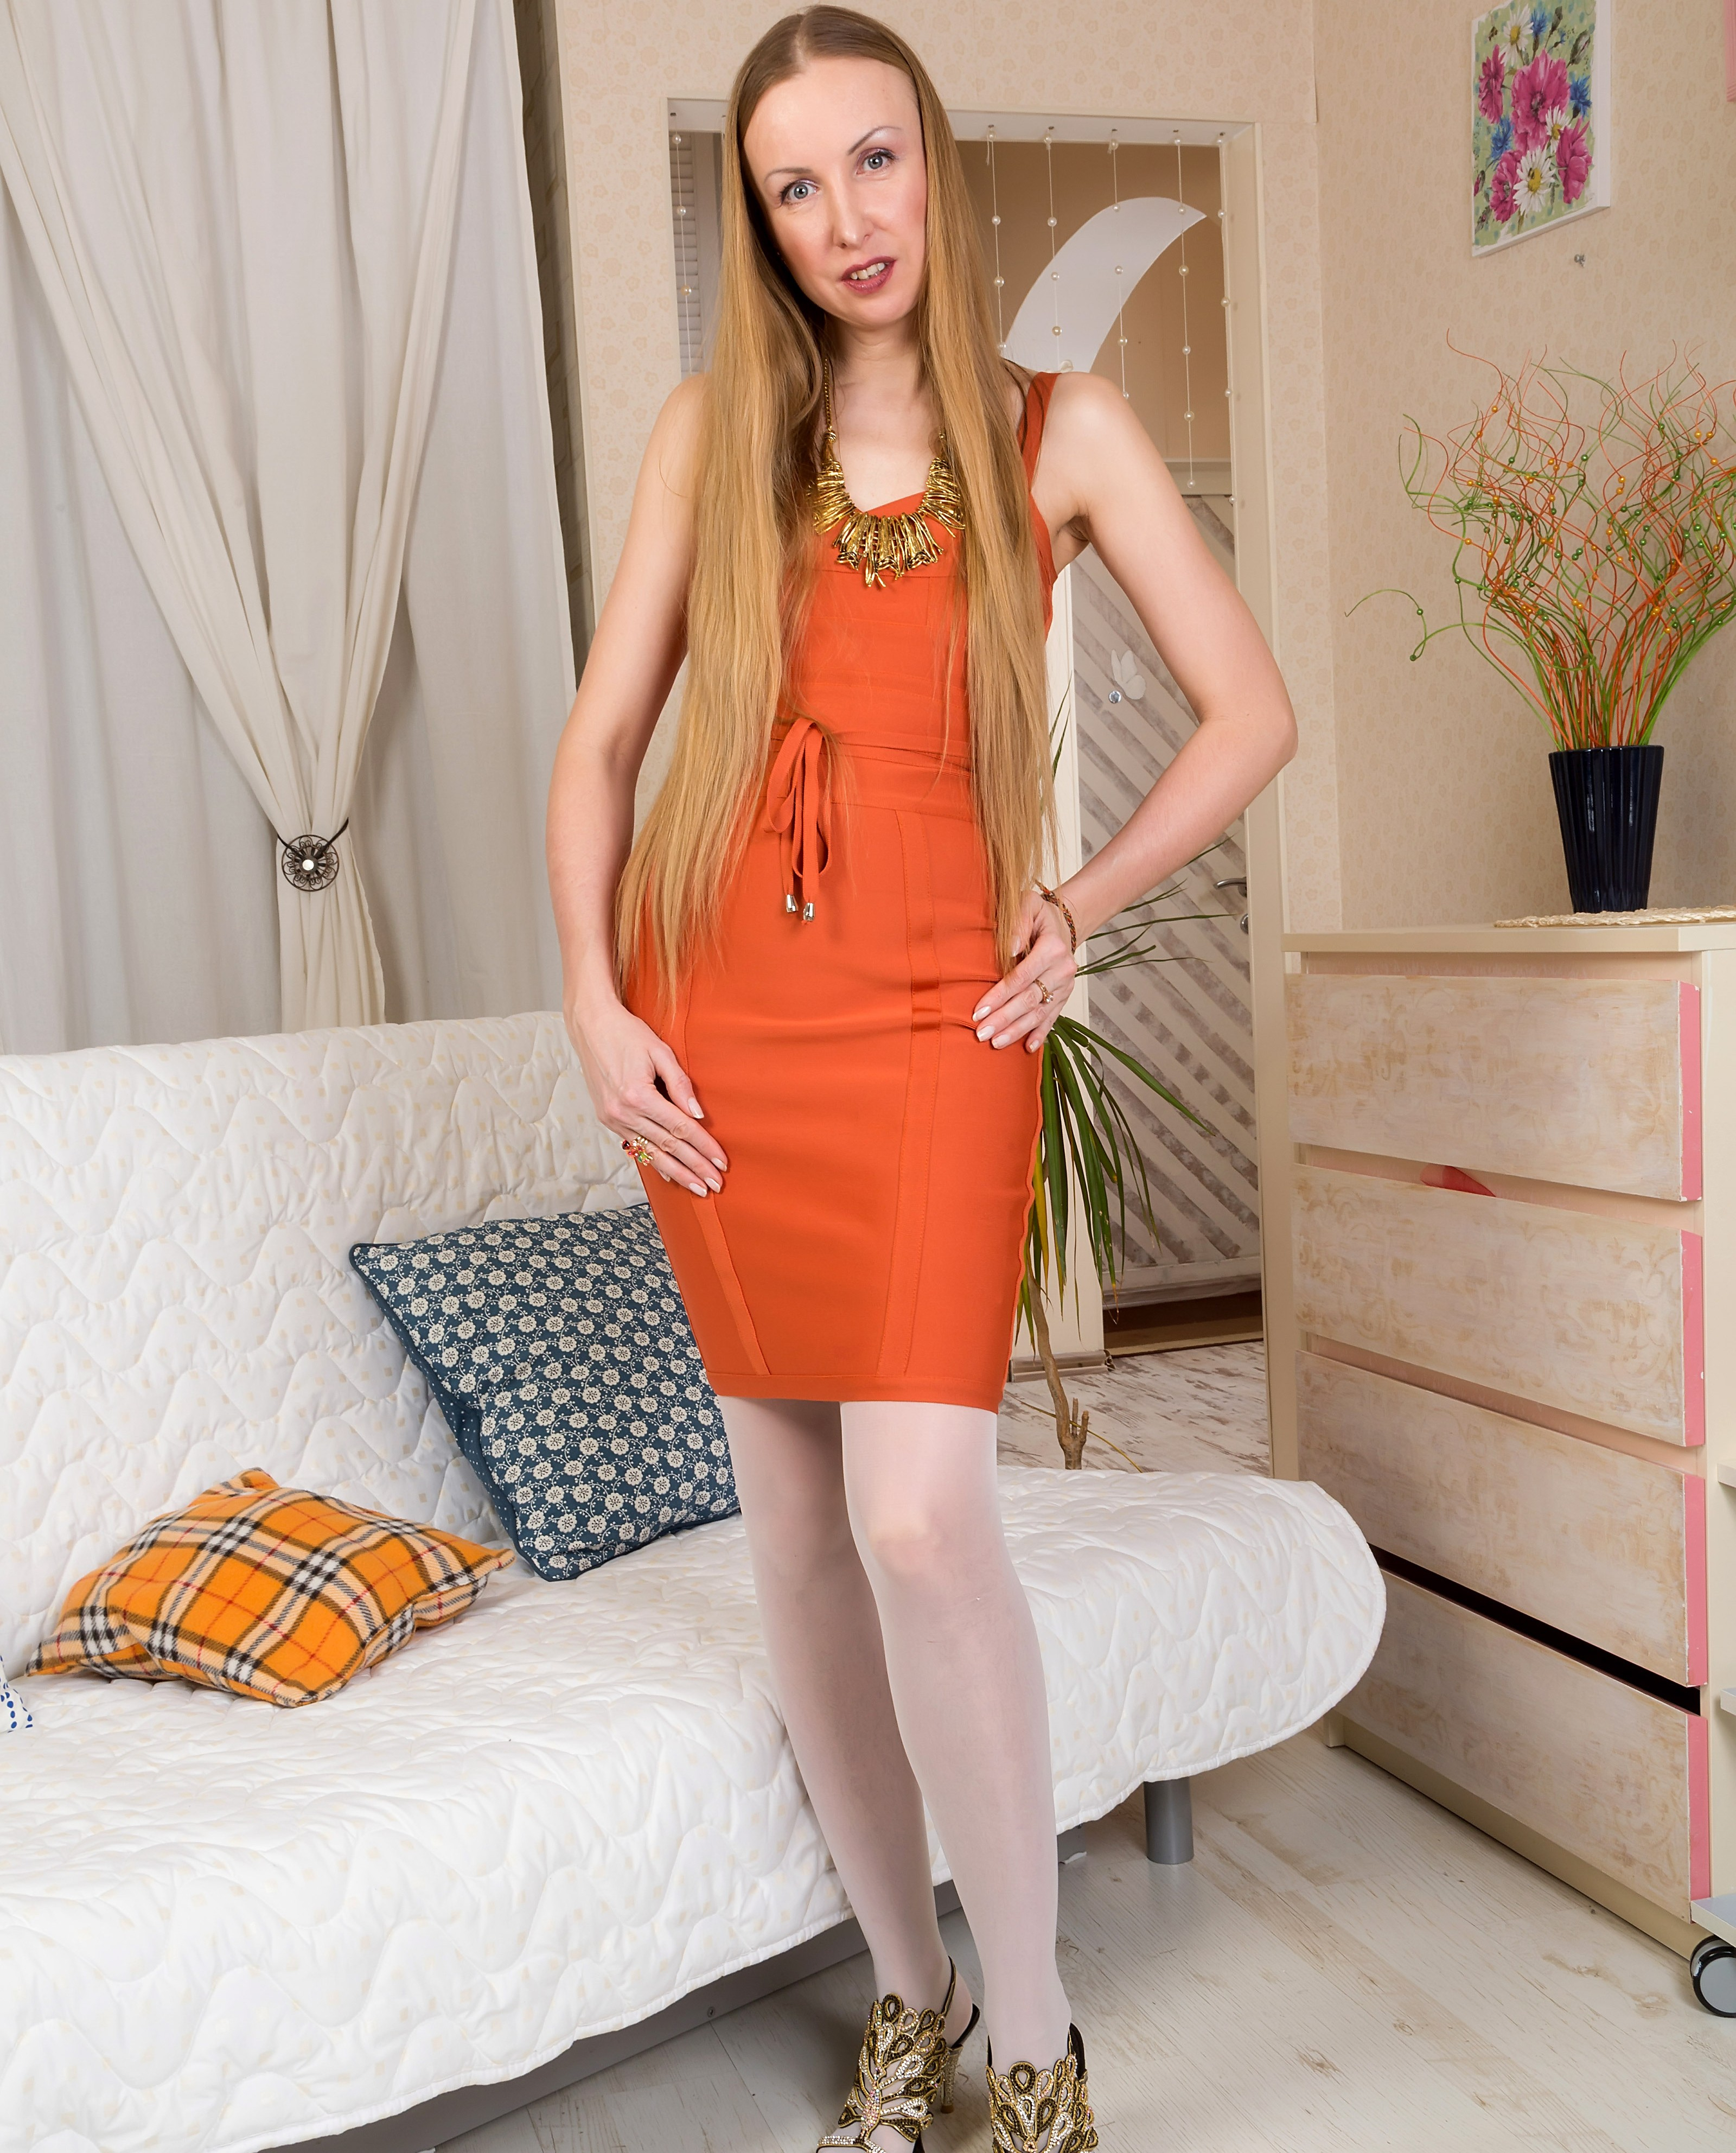 new allover30 Upcoming_Model Yulija 1429